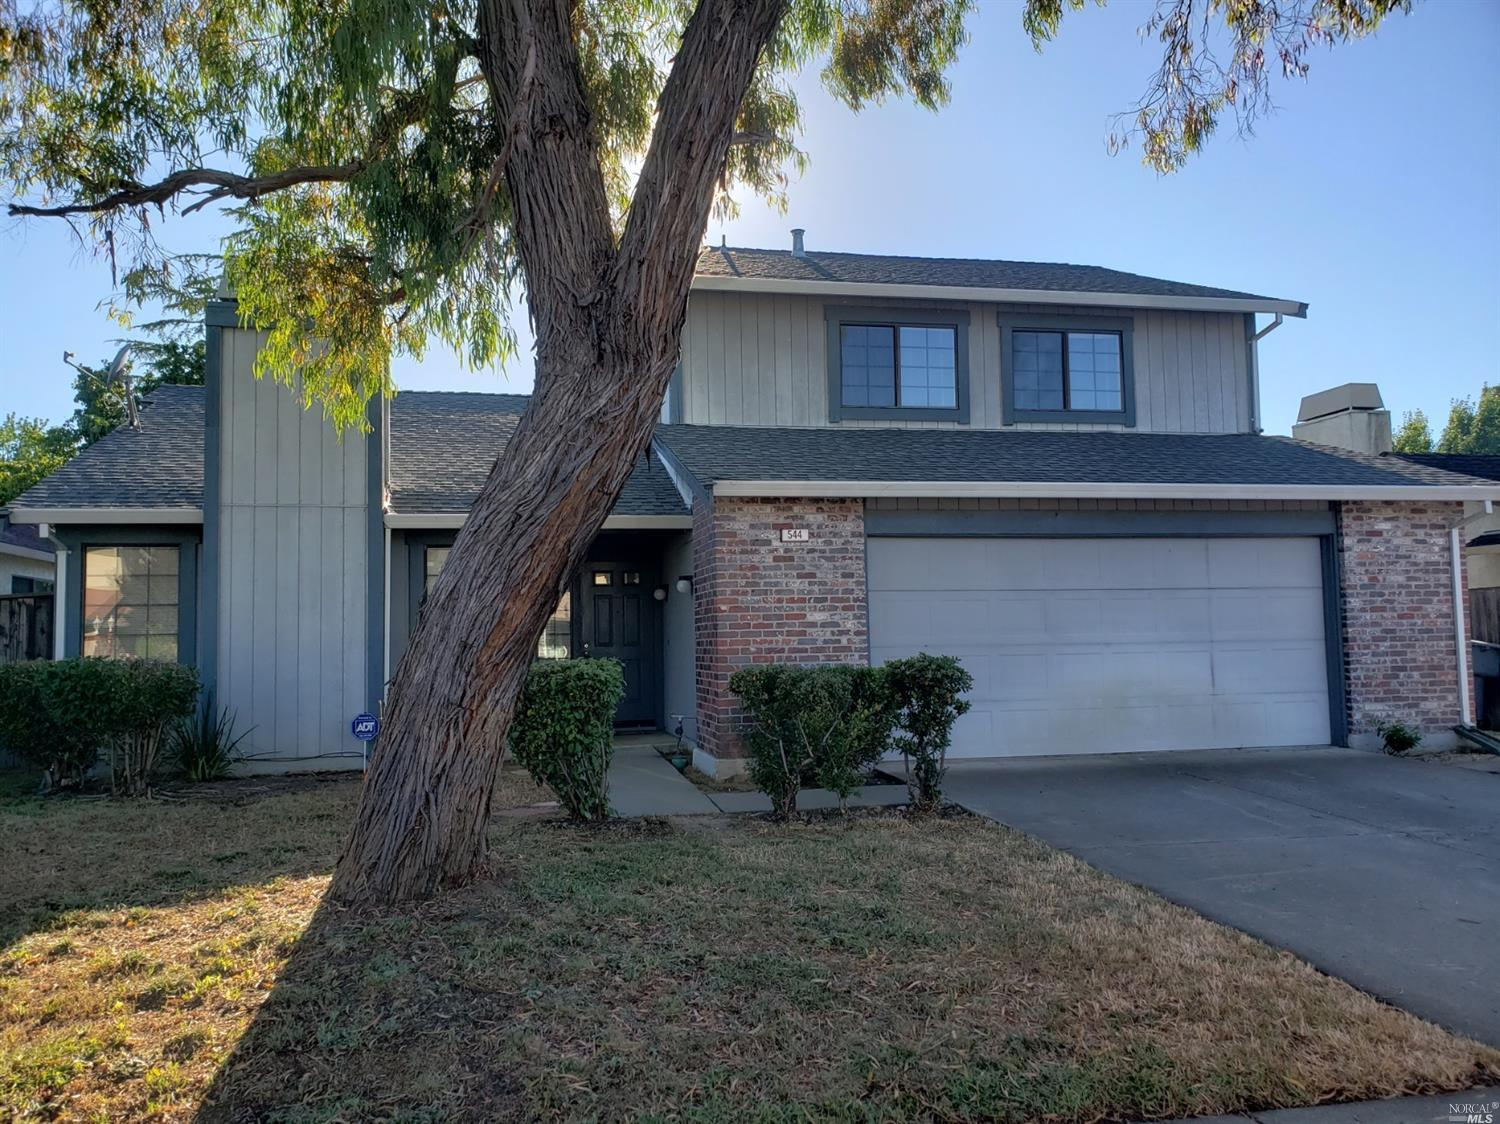 Your new home is right here! Located in a nice neighborhood. Two story home with spacious floor plan